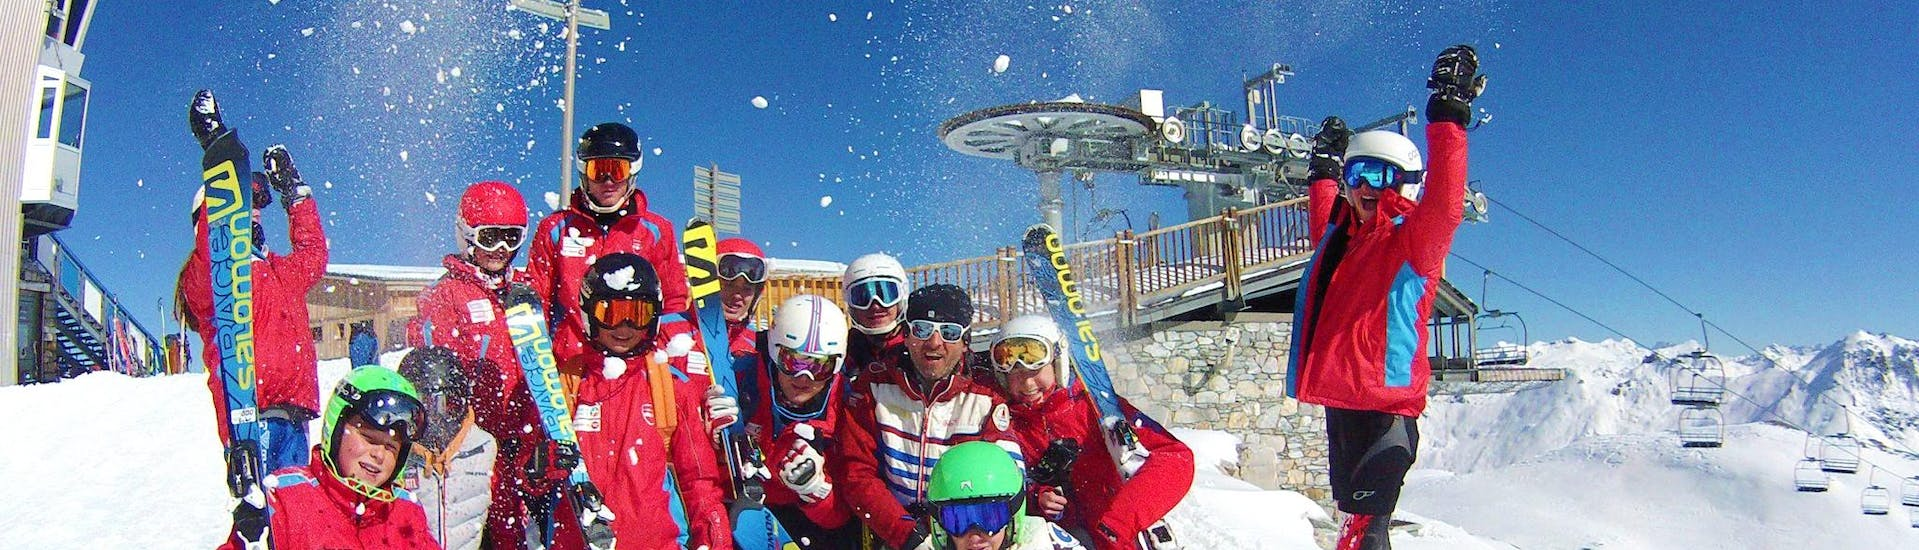 skiing-lessons-for-teens-13-18-years-morning-holidays-esf-la-plagne-hero